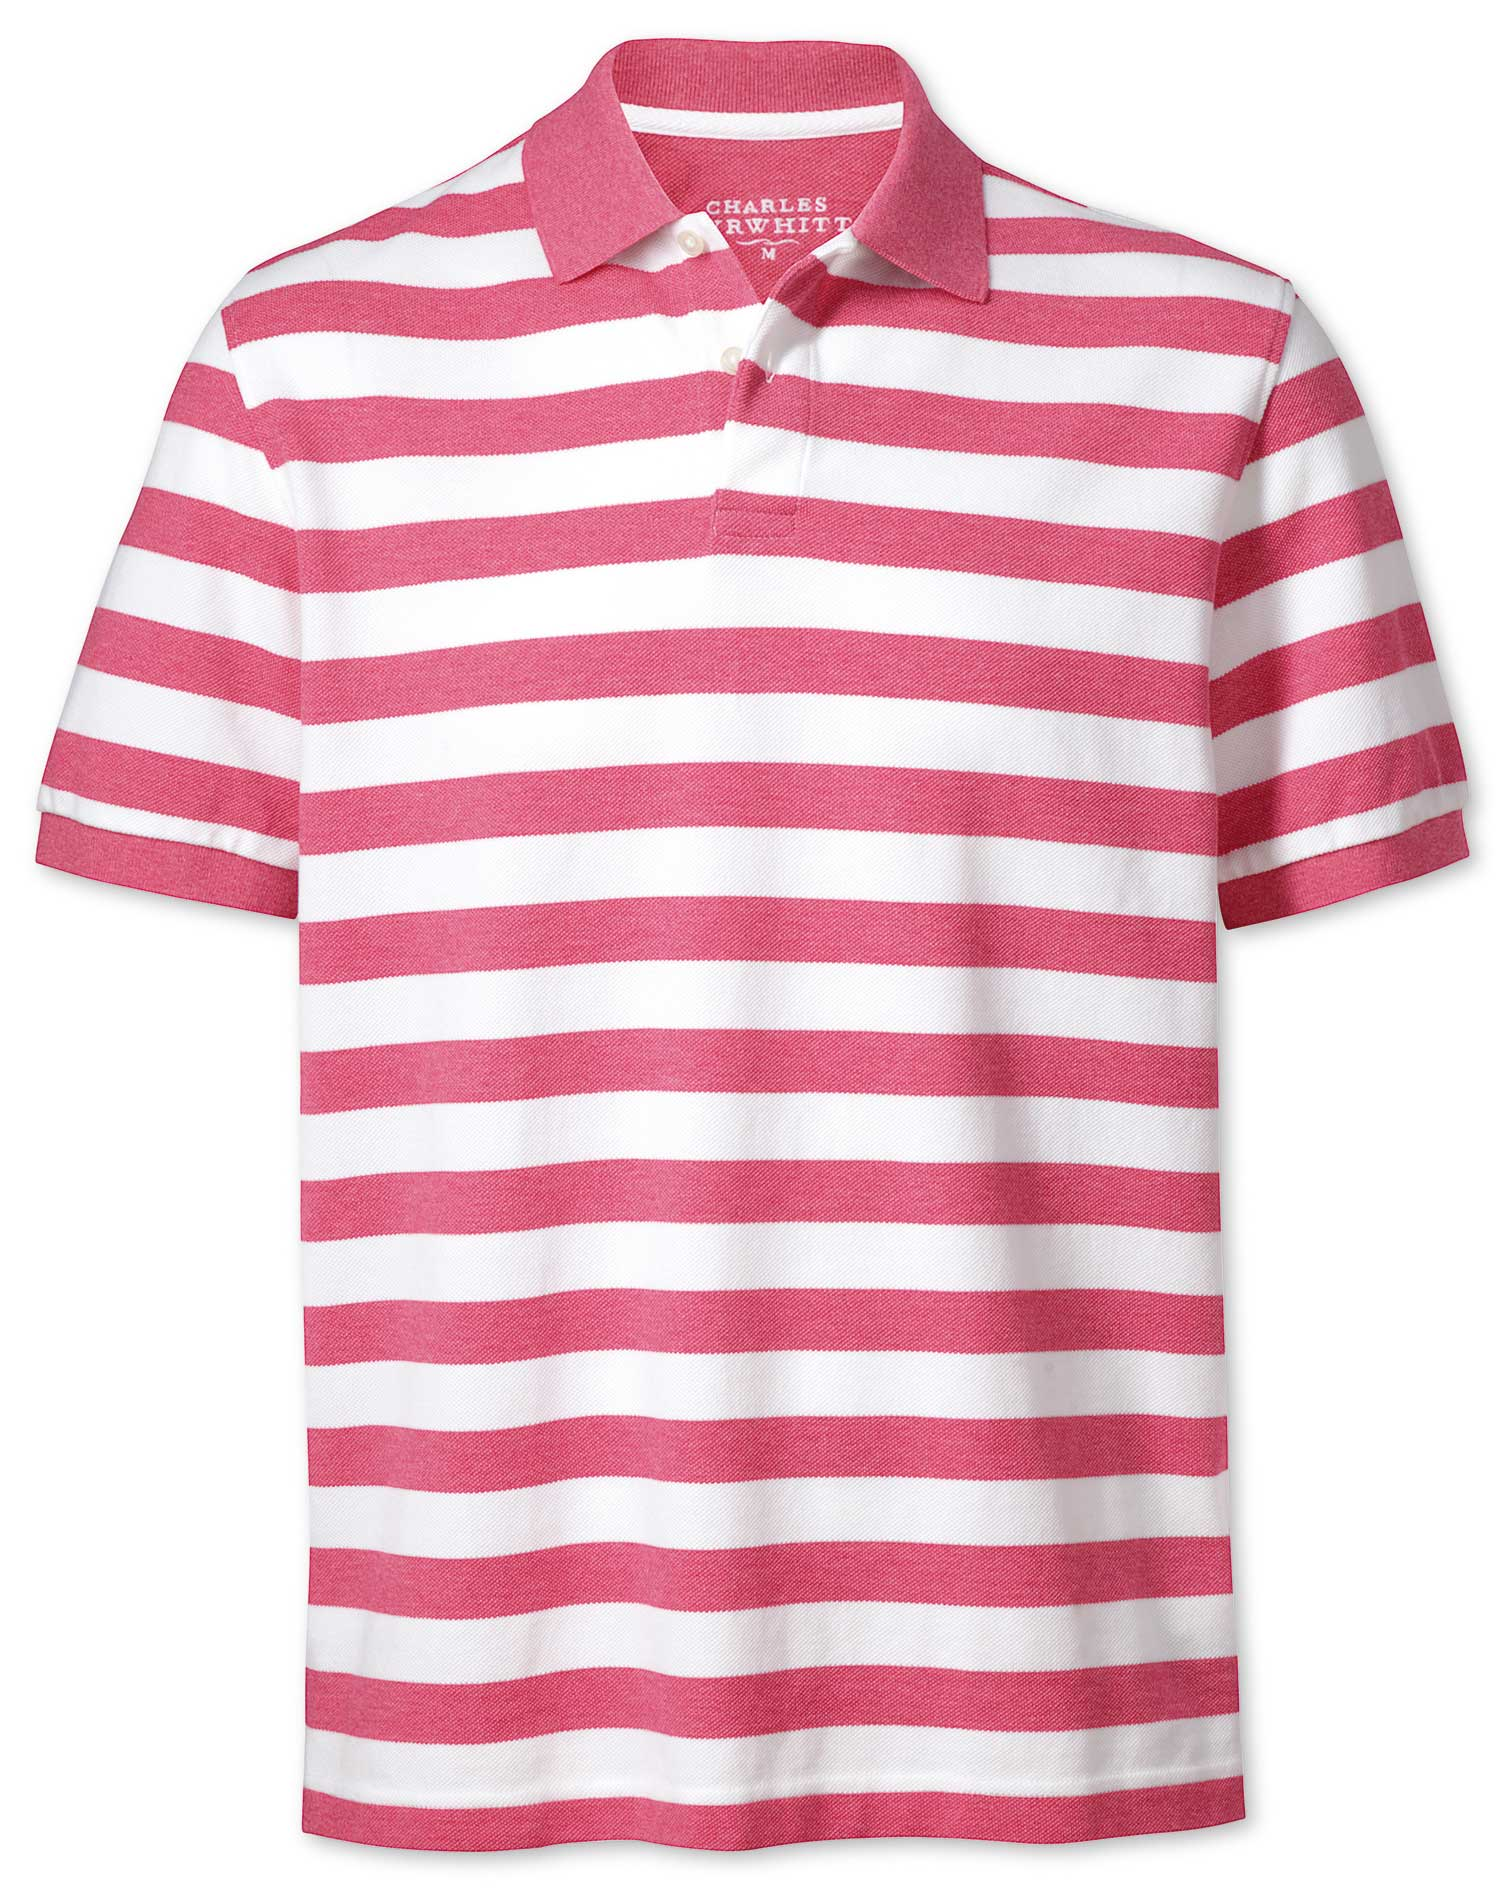 Dark Pink Stripe Pique Cotton Polo Size XS by Charles Tyrwhitt